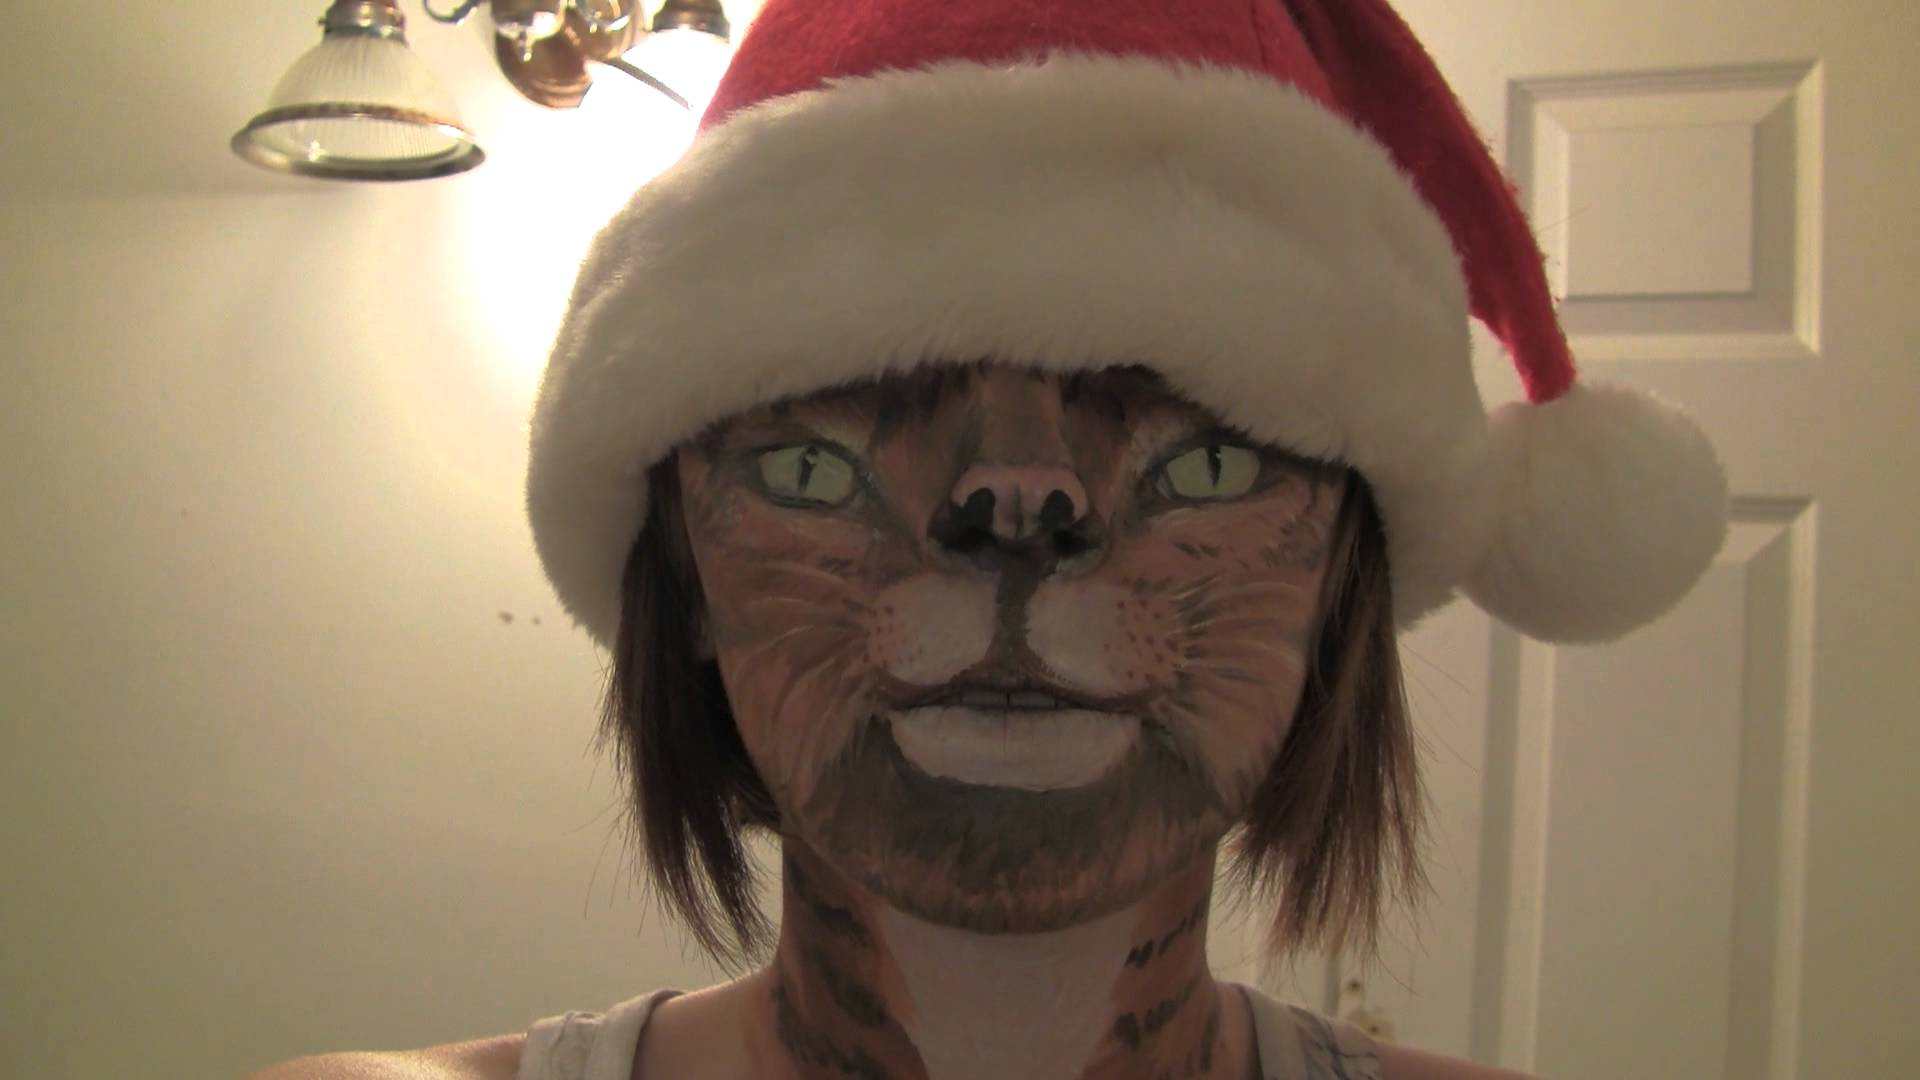 Chat with santa face to online dating. austin is dating kira but sleeping with aly fanfiction.